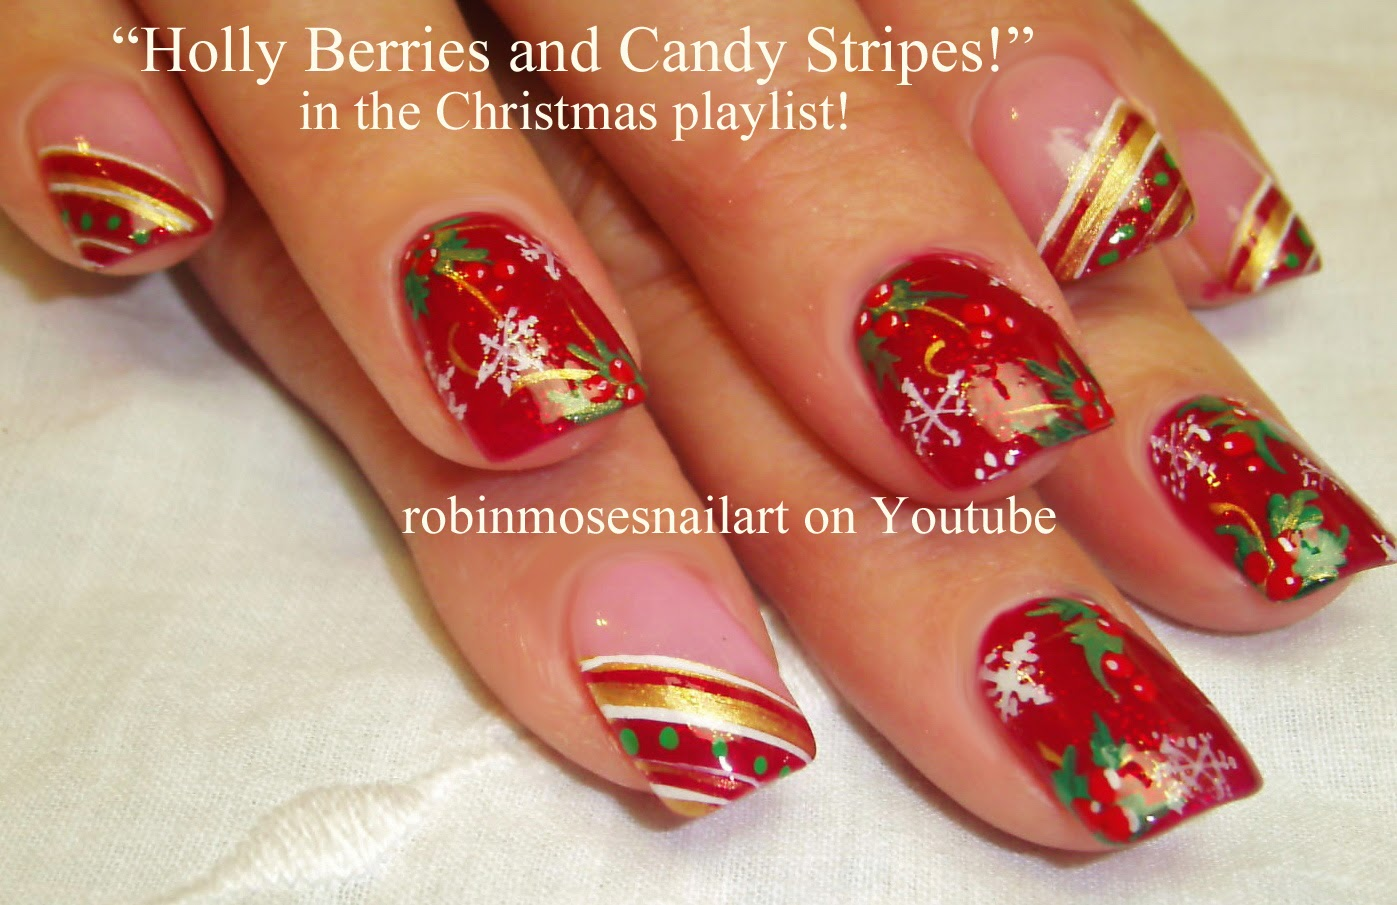 Robin moses nail art christmas nails nail art cute xmas christmas nails nail art cute xmas nails christmas nail art christmas nail designs xmas nail art easy christmas nails simple christmas nails prinsesfo Gallery